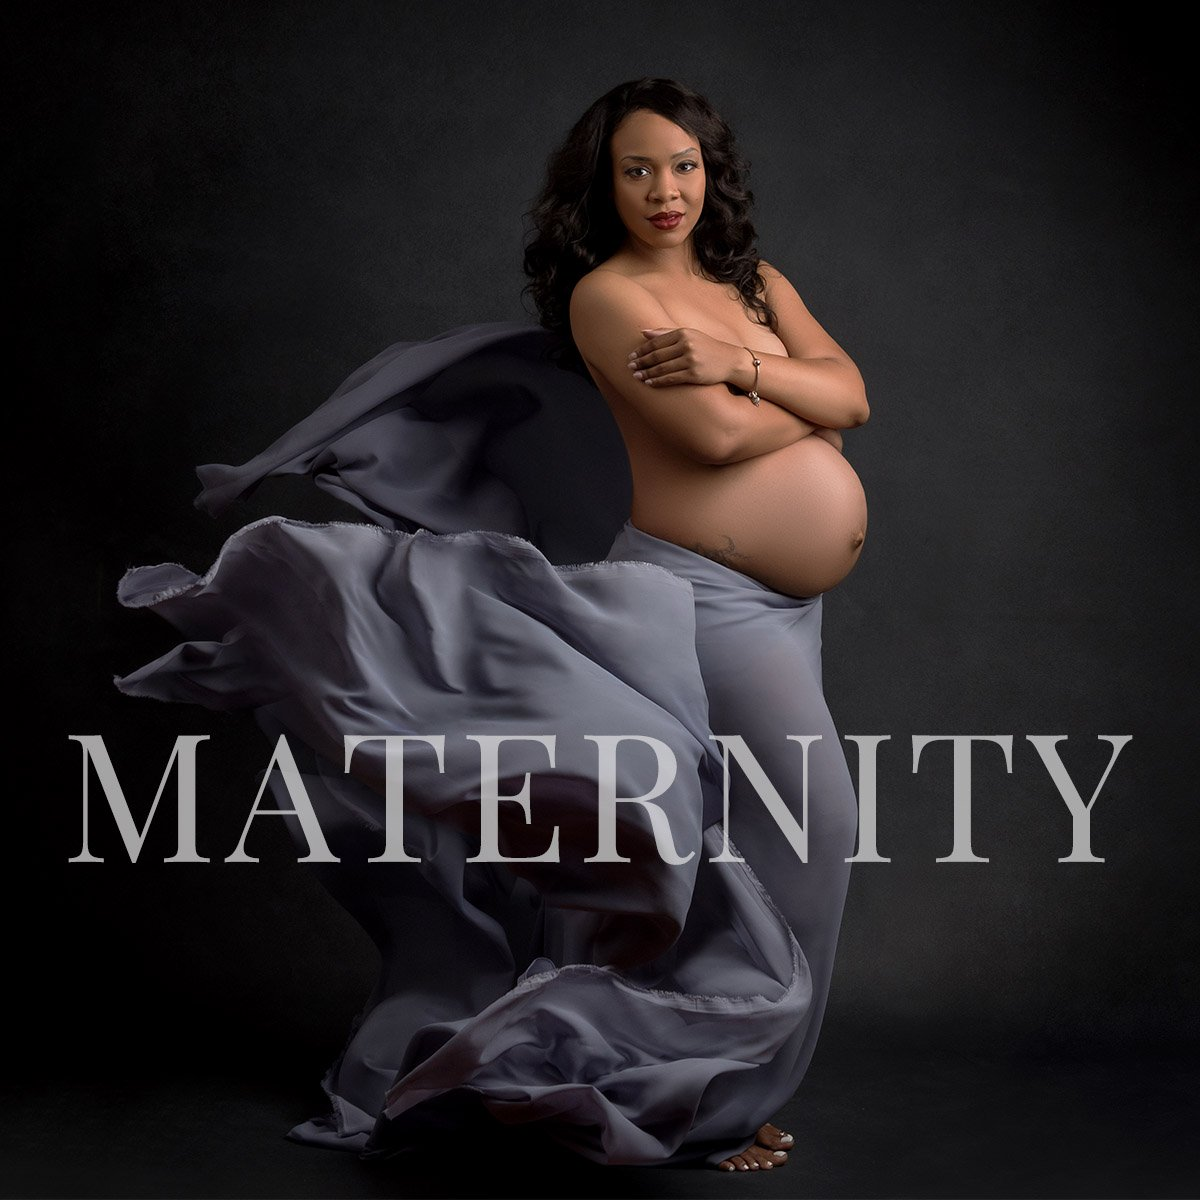 Maternity portfolio link image for Truly Madly Deeply - maternity, newborn and family photography in Melbourne, Florida, Viera, Titusville, Orlando, Brevard County, Space Coast, Central Florida. Mobile version.